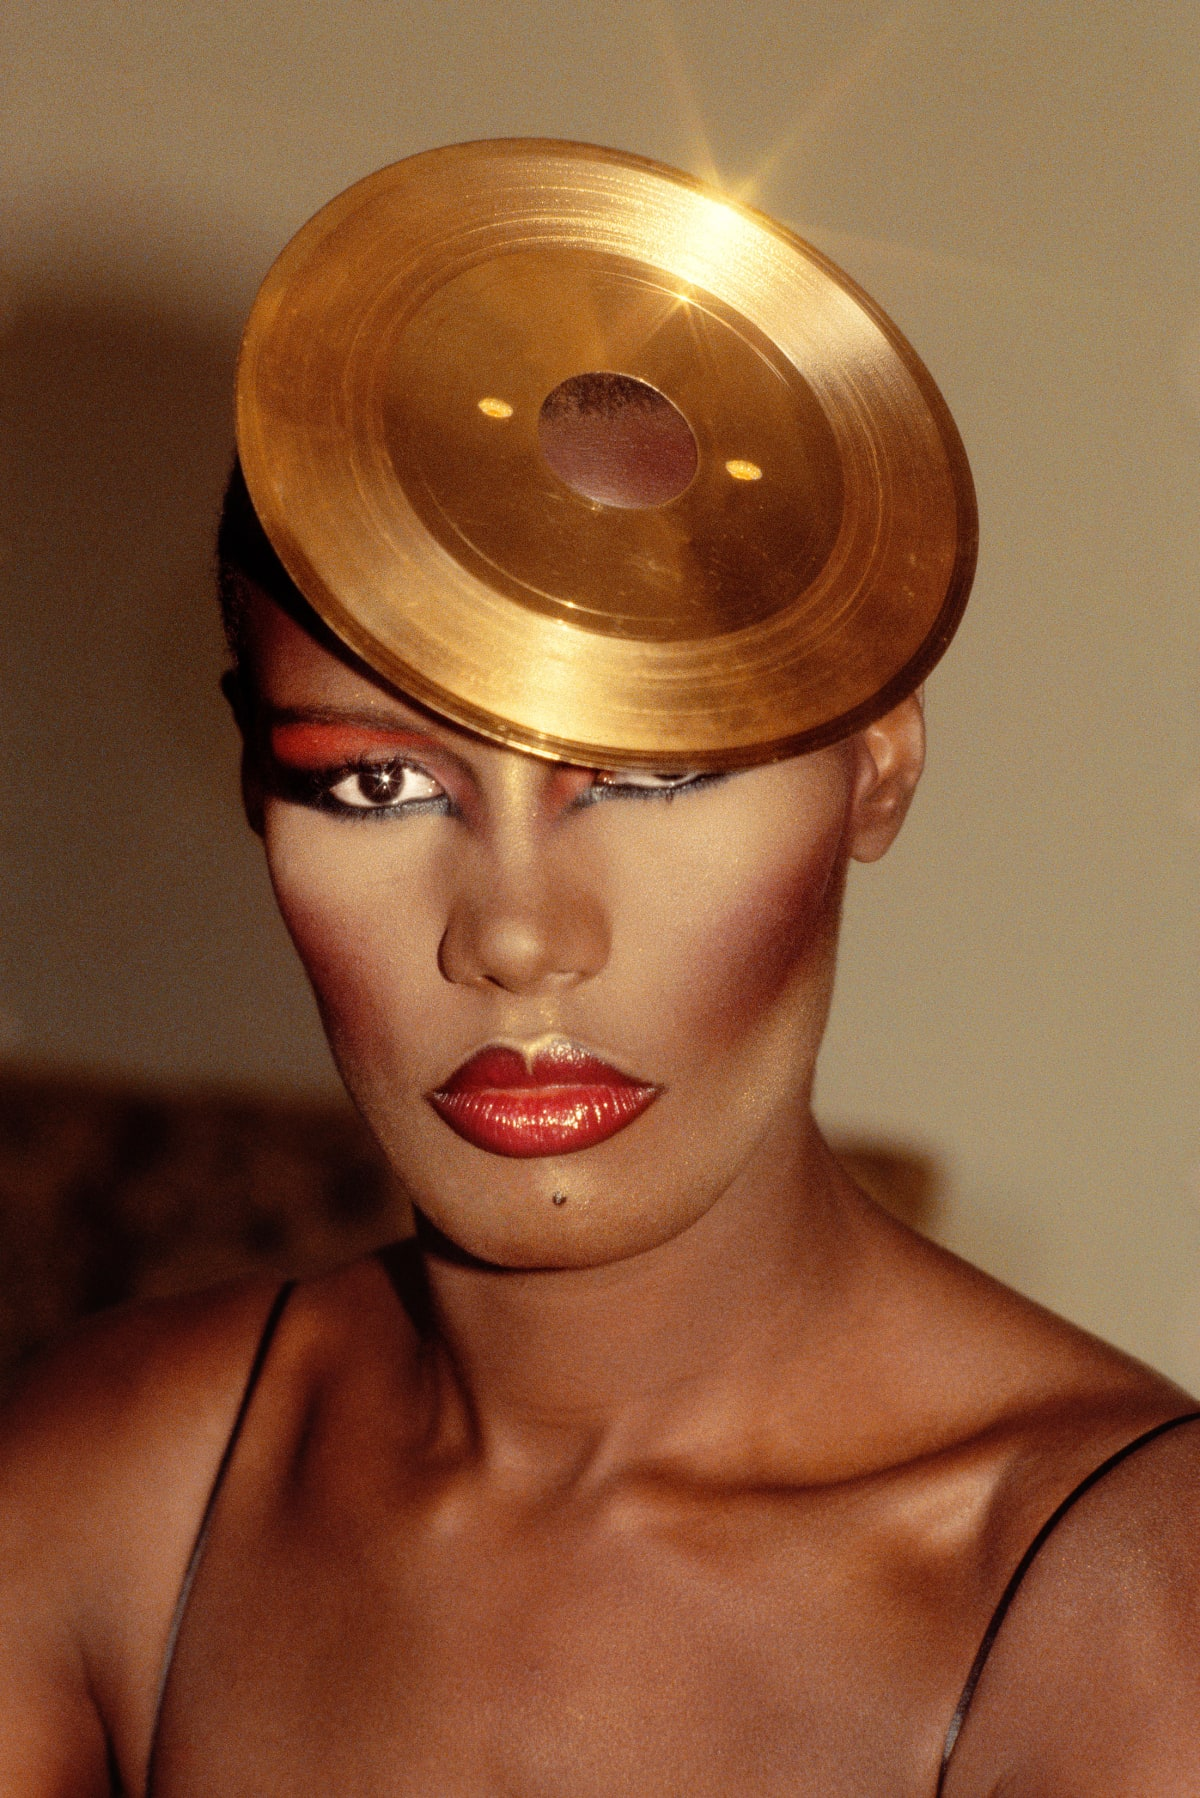 Kwame Brathwaite, Untitled (Grace Jones Photoshoot), 1980s c., printed 2018